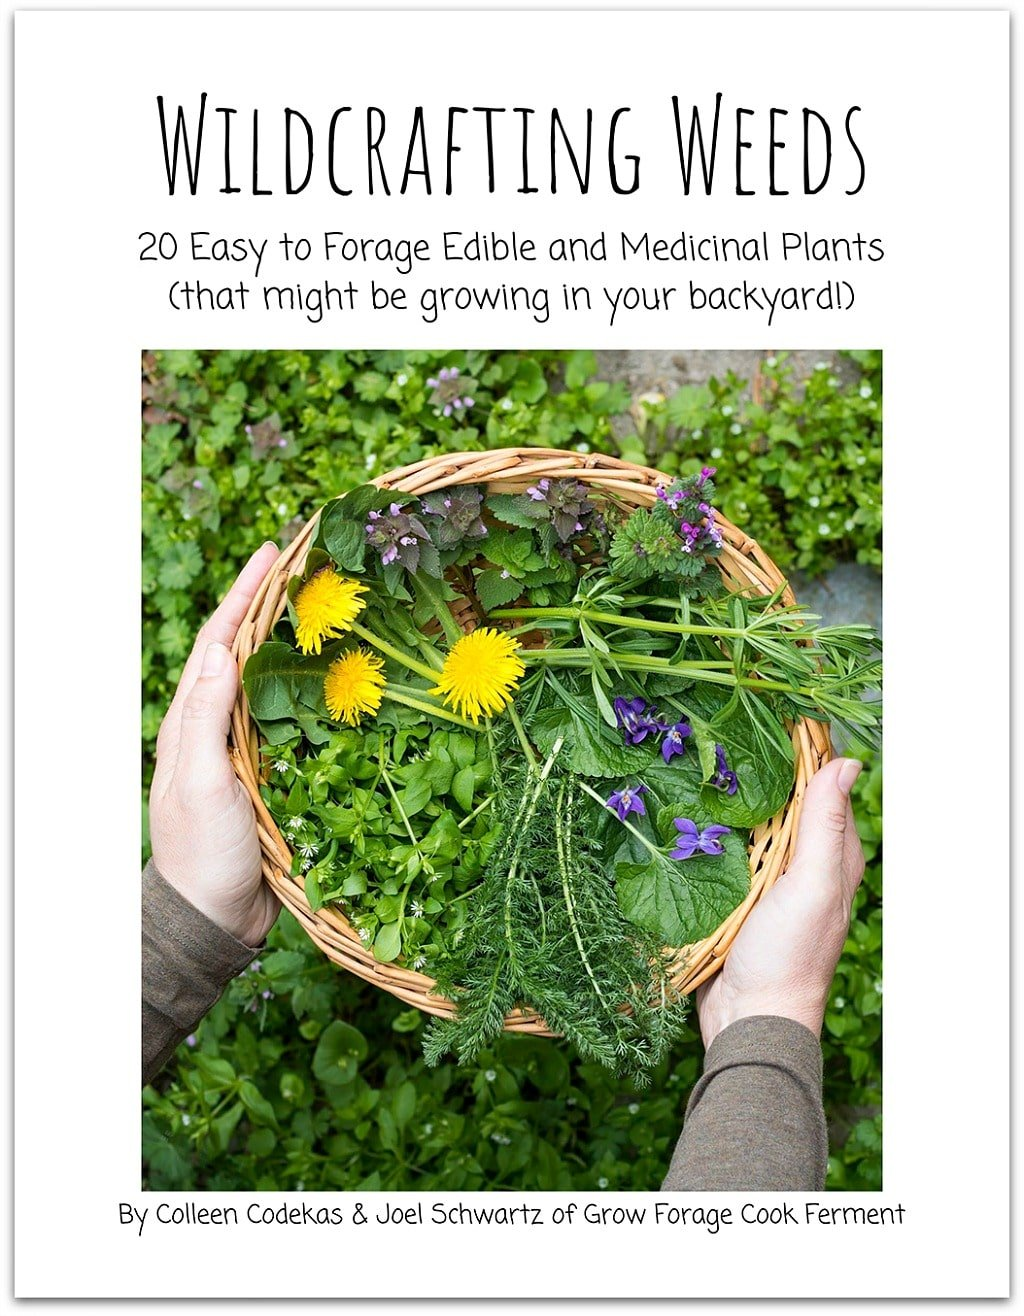 Wildcrafting Weeds eBook